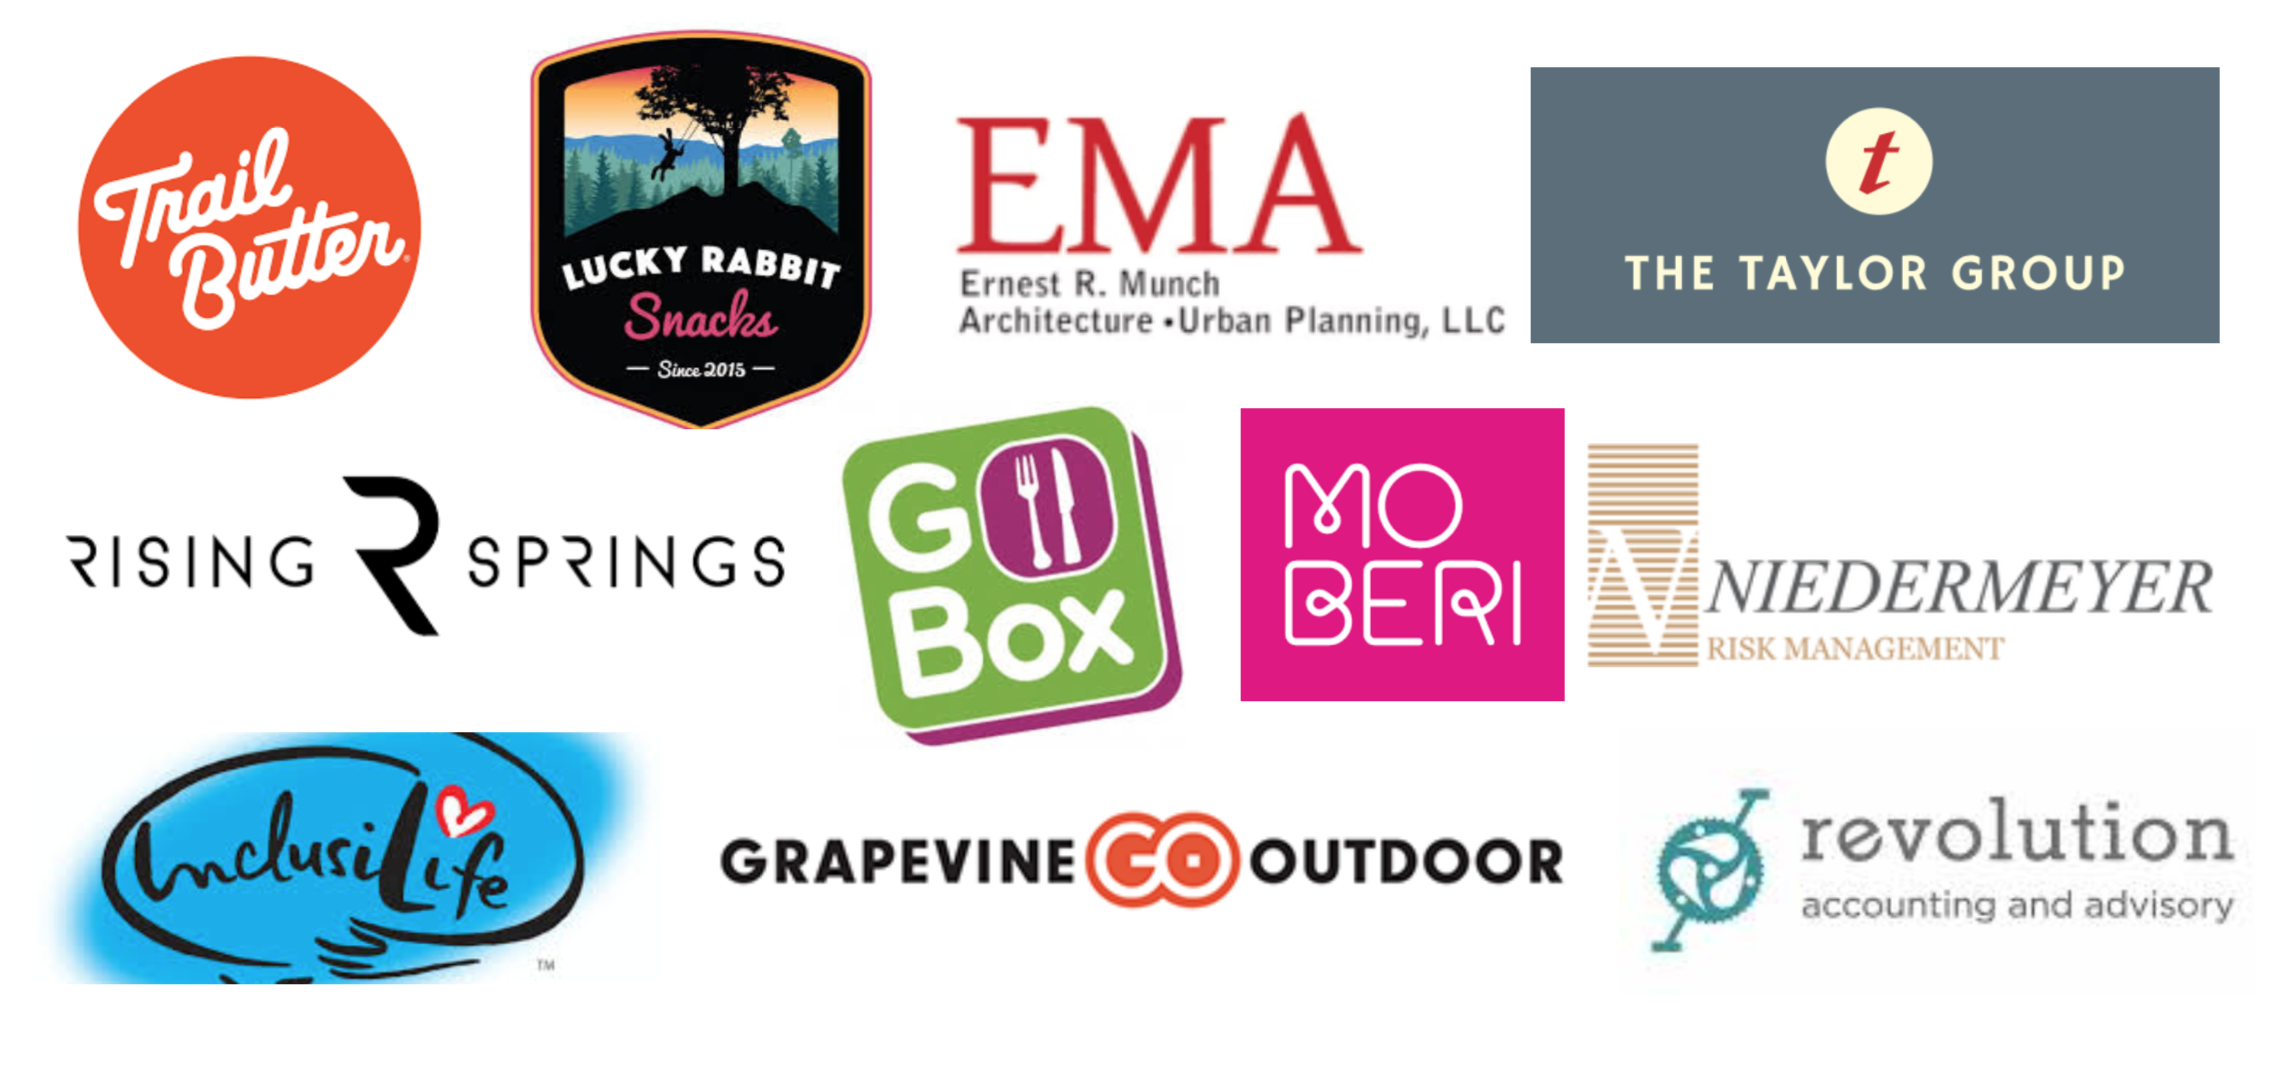 Logos for the 2018-2019 clients of B Impact, including Trail Butter, Lucky Rabbit Snacks, EMA Architecture, The Taylor Group, Rising Springs, Go Box, Mo Beri, Niedermeyer risk management, Inclusive Life, Grapevine Outdoor, and Revolution Accounting